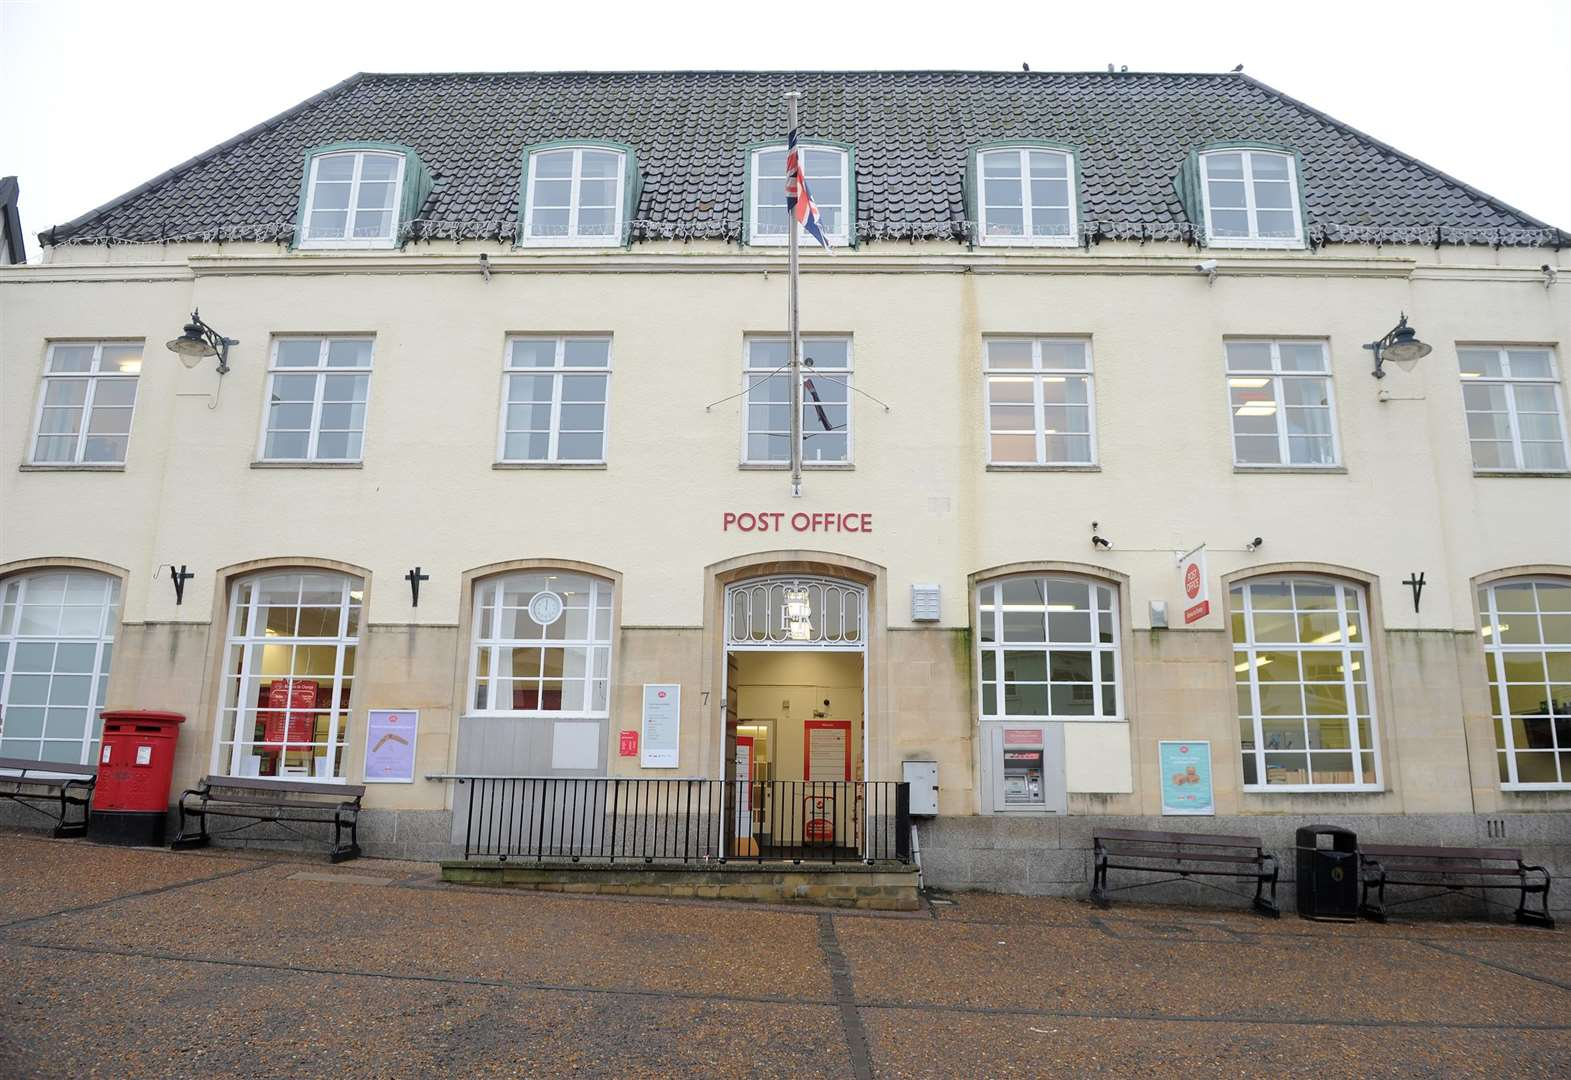 Closing date for franchise applications for Diss Post Office to be extended